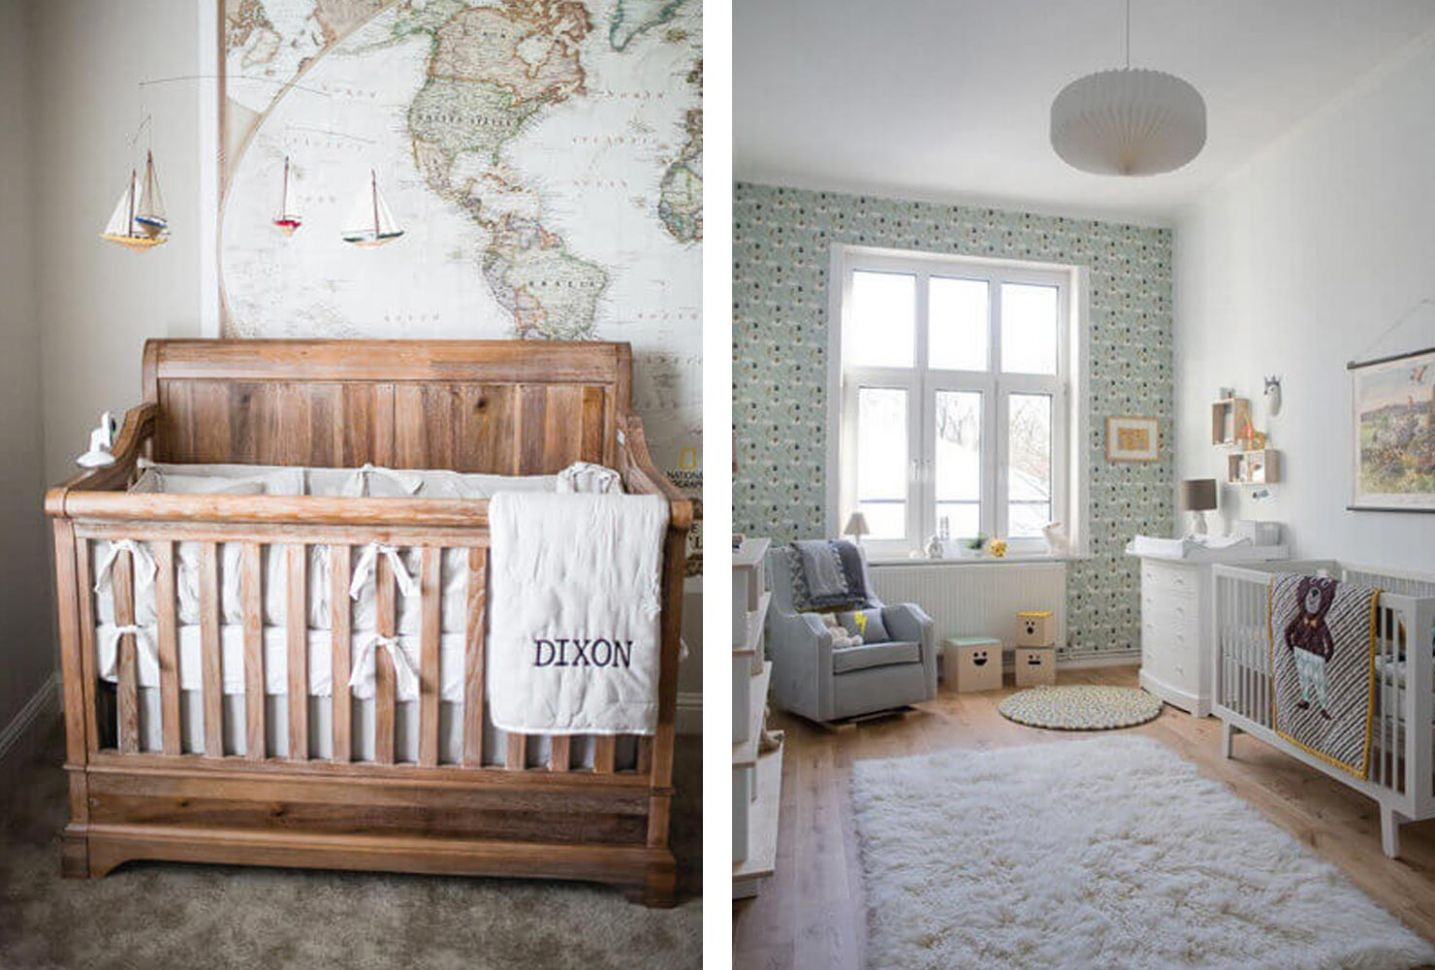 9+ Cute Baby Boy Room Ideas | Shutterfly - baby room decor ideas